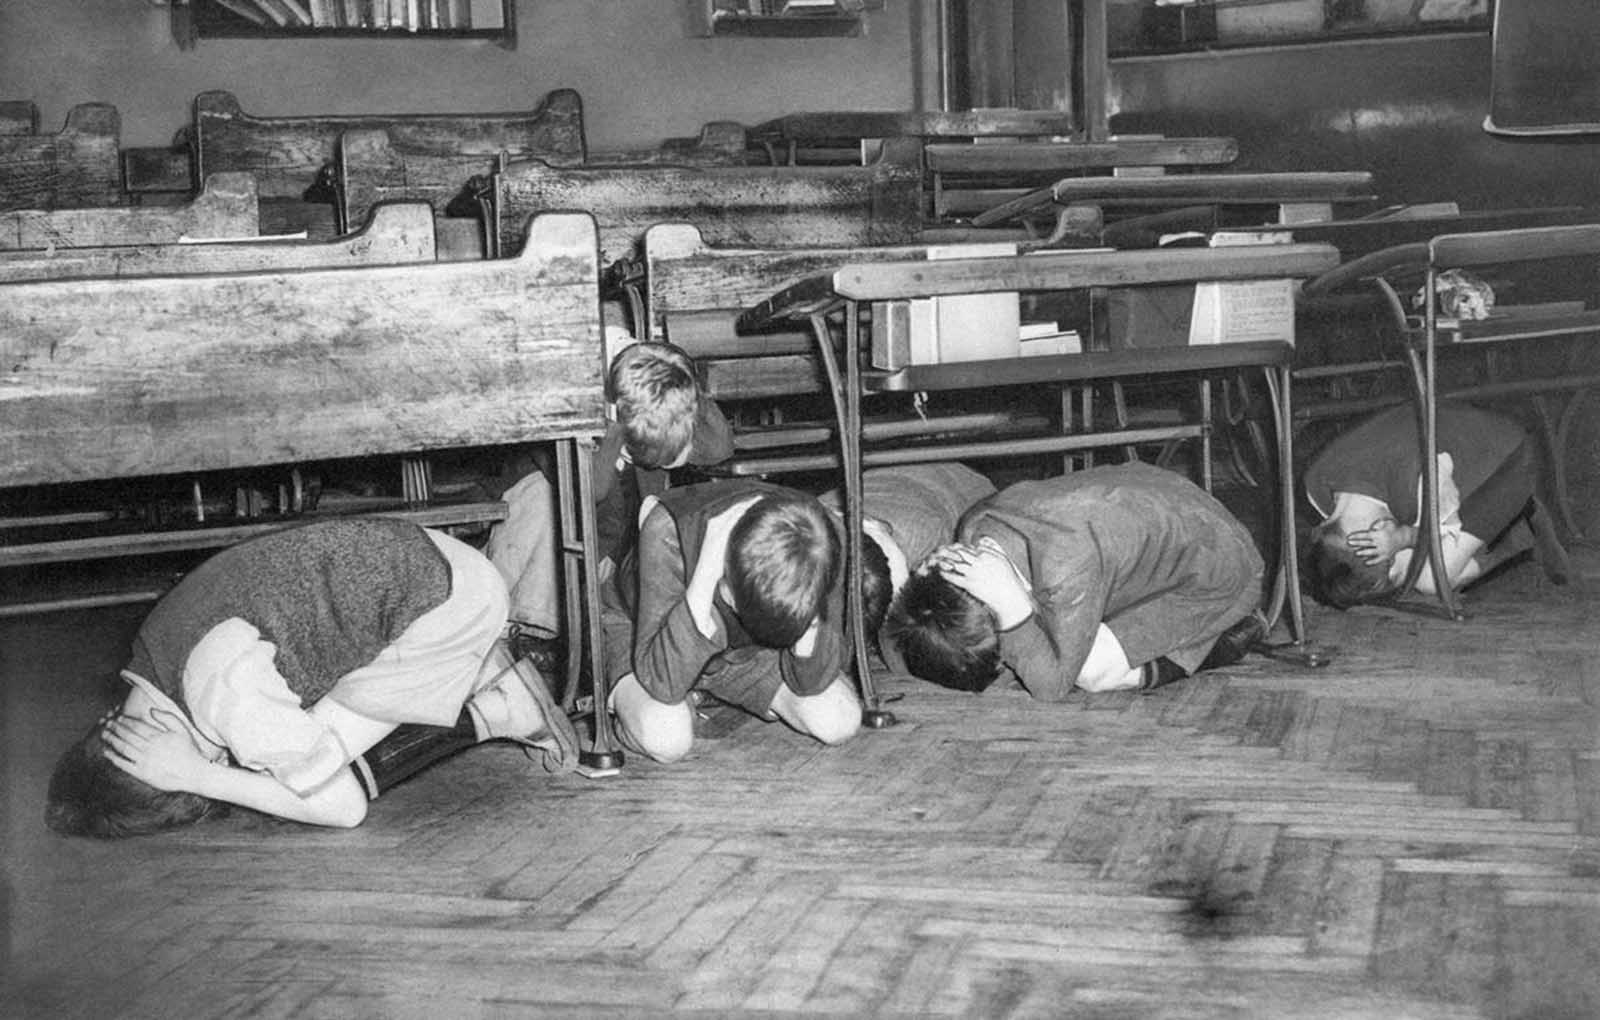 These London schoolchildren are in the midst of an air raid drill ordered by the London Board of Education as a precaution in case an air raid comes too fast to give the youngsters a chance to leave the building for special shelters, on July 20, 1940. They were ordered to go to the middle of the room, away from windows, and hold their hands over the backs of their necks.